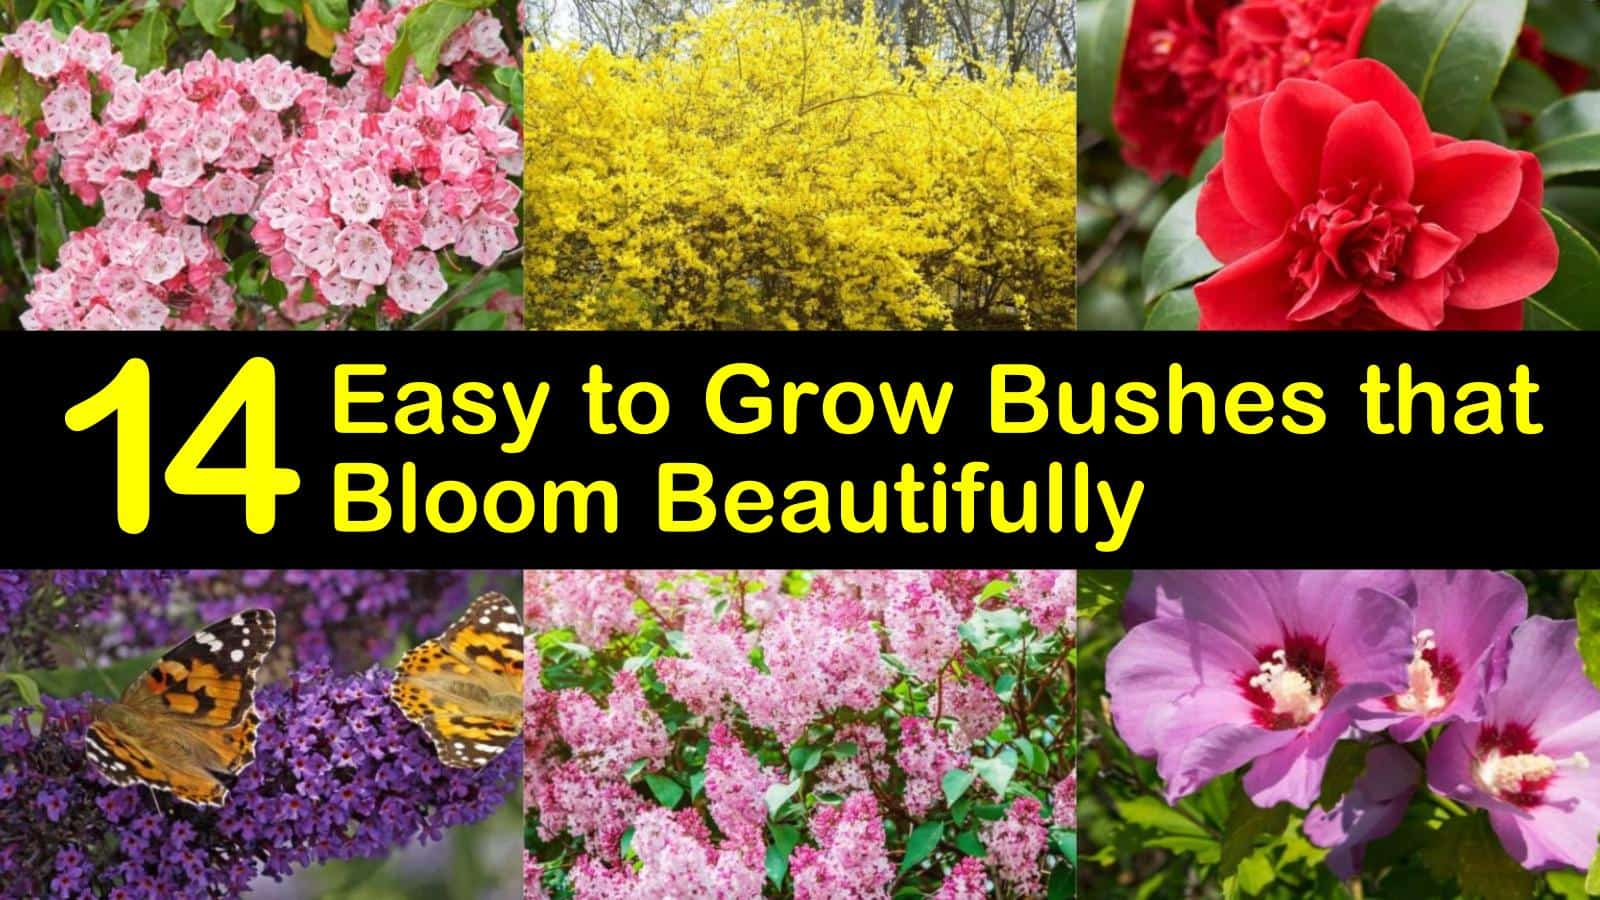 14 Easy To Grow Bushes That Bloom Beautifully